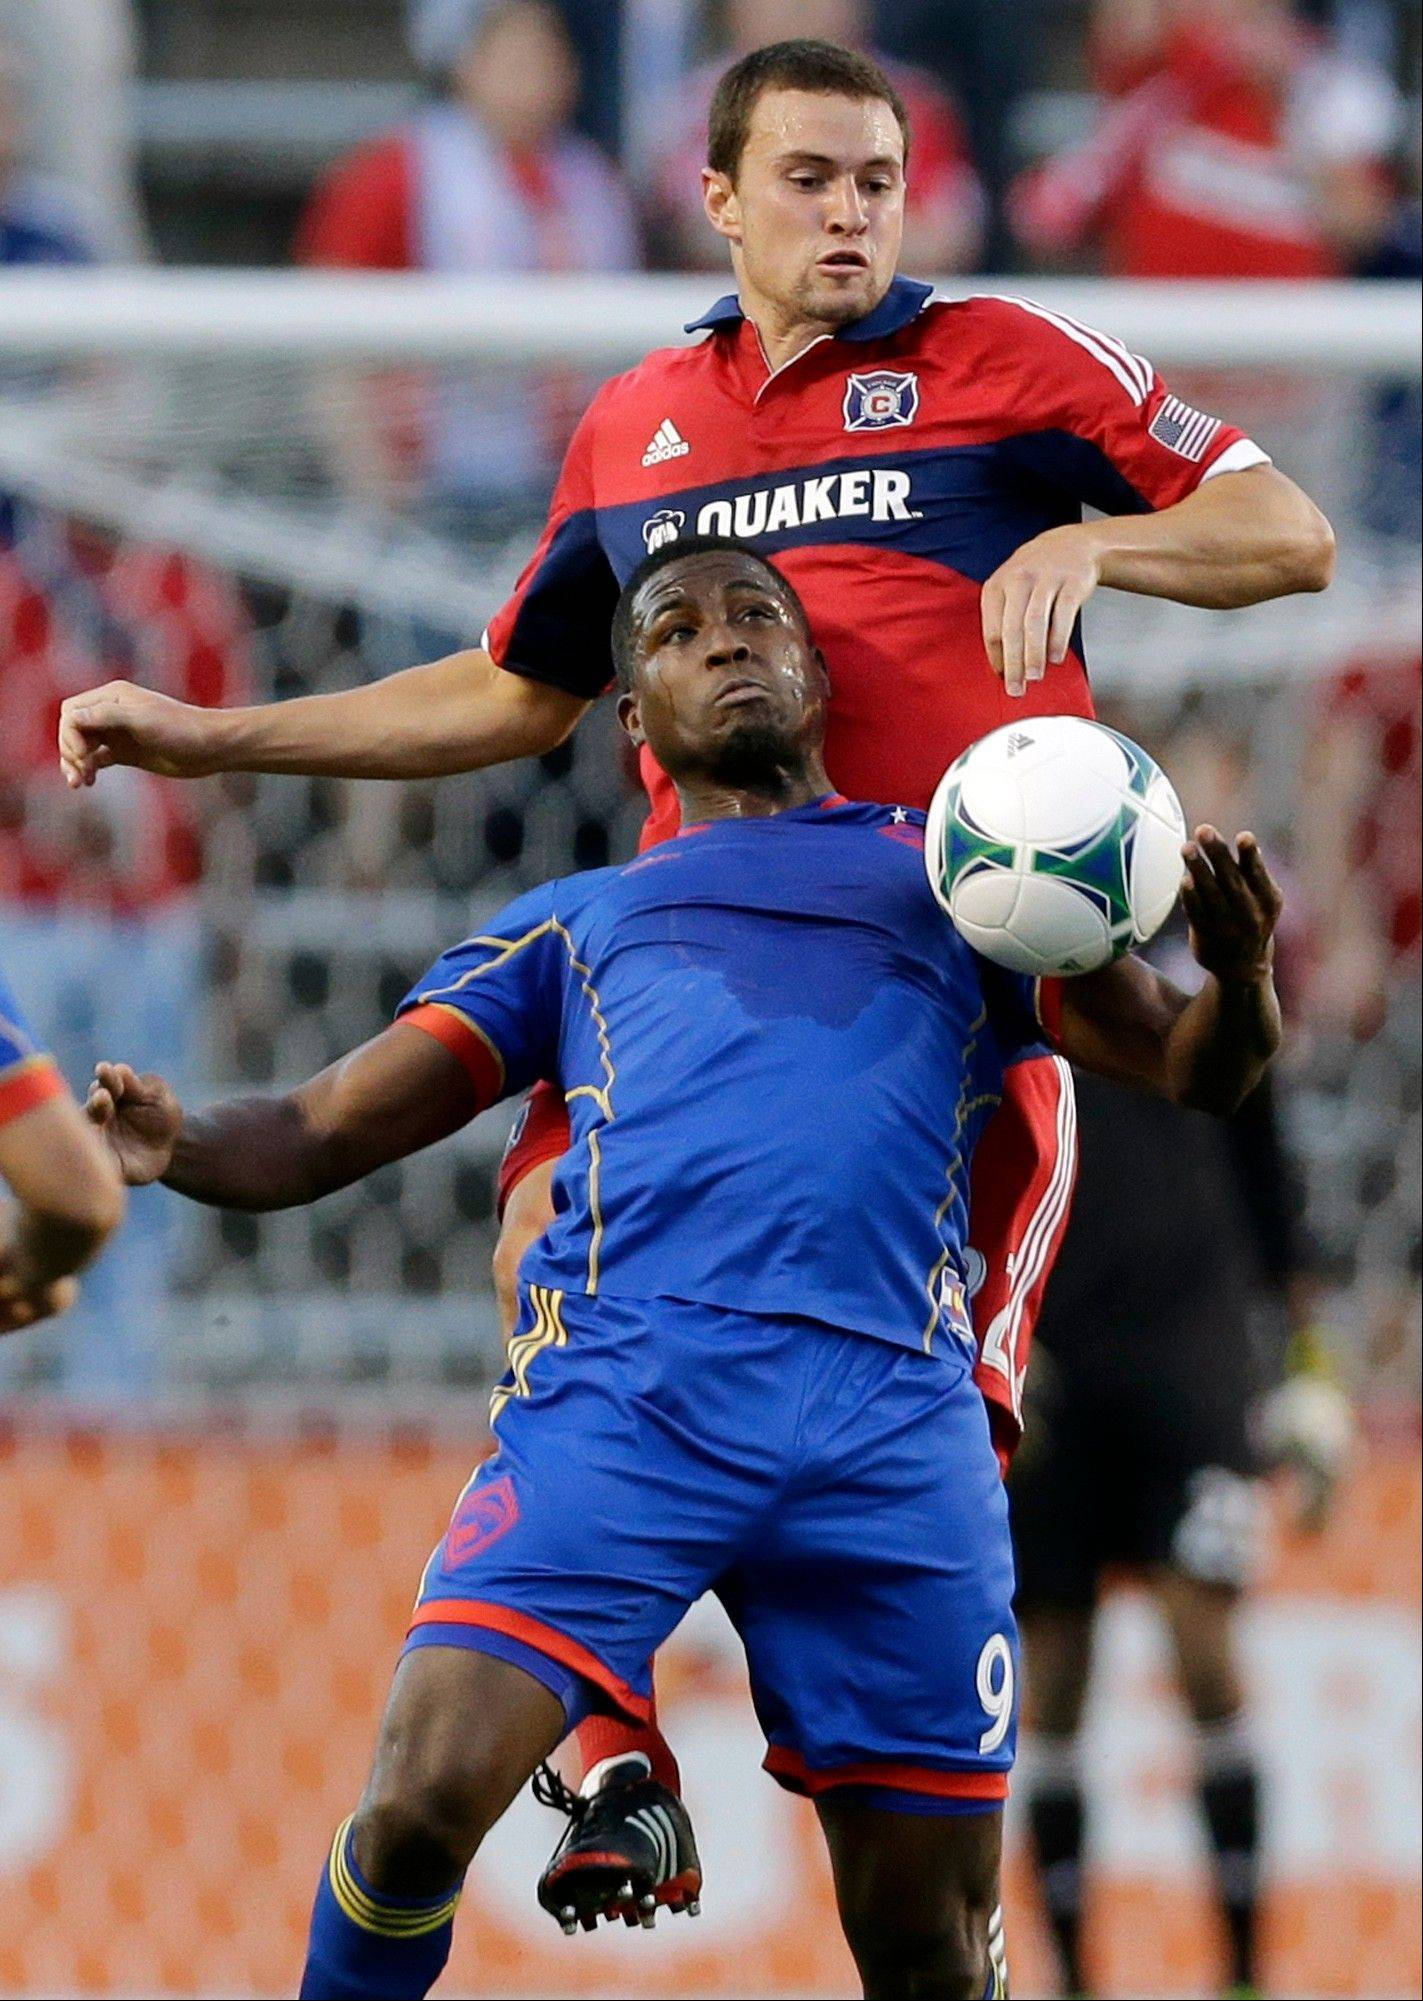 Colorado Rapids forward Edson Buddle, bottom, and Chicago Fire defender Austin Berry battle for the ball during Tuesday night's game in Bridgeview.